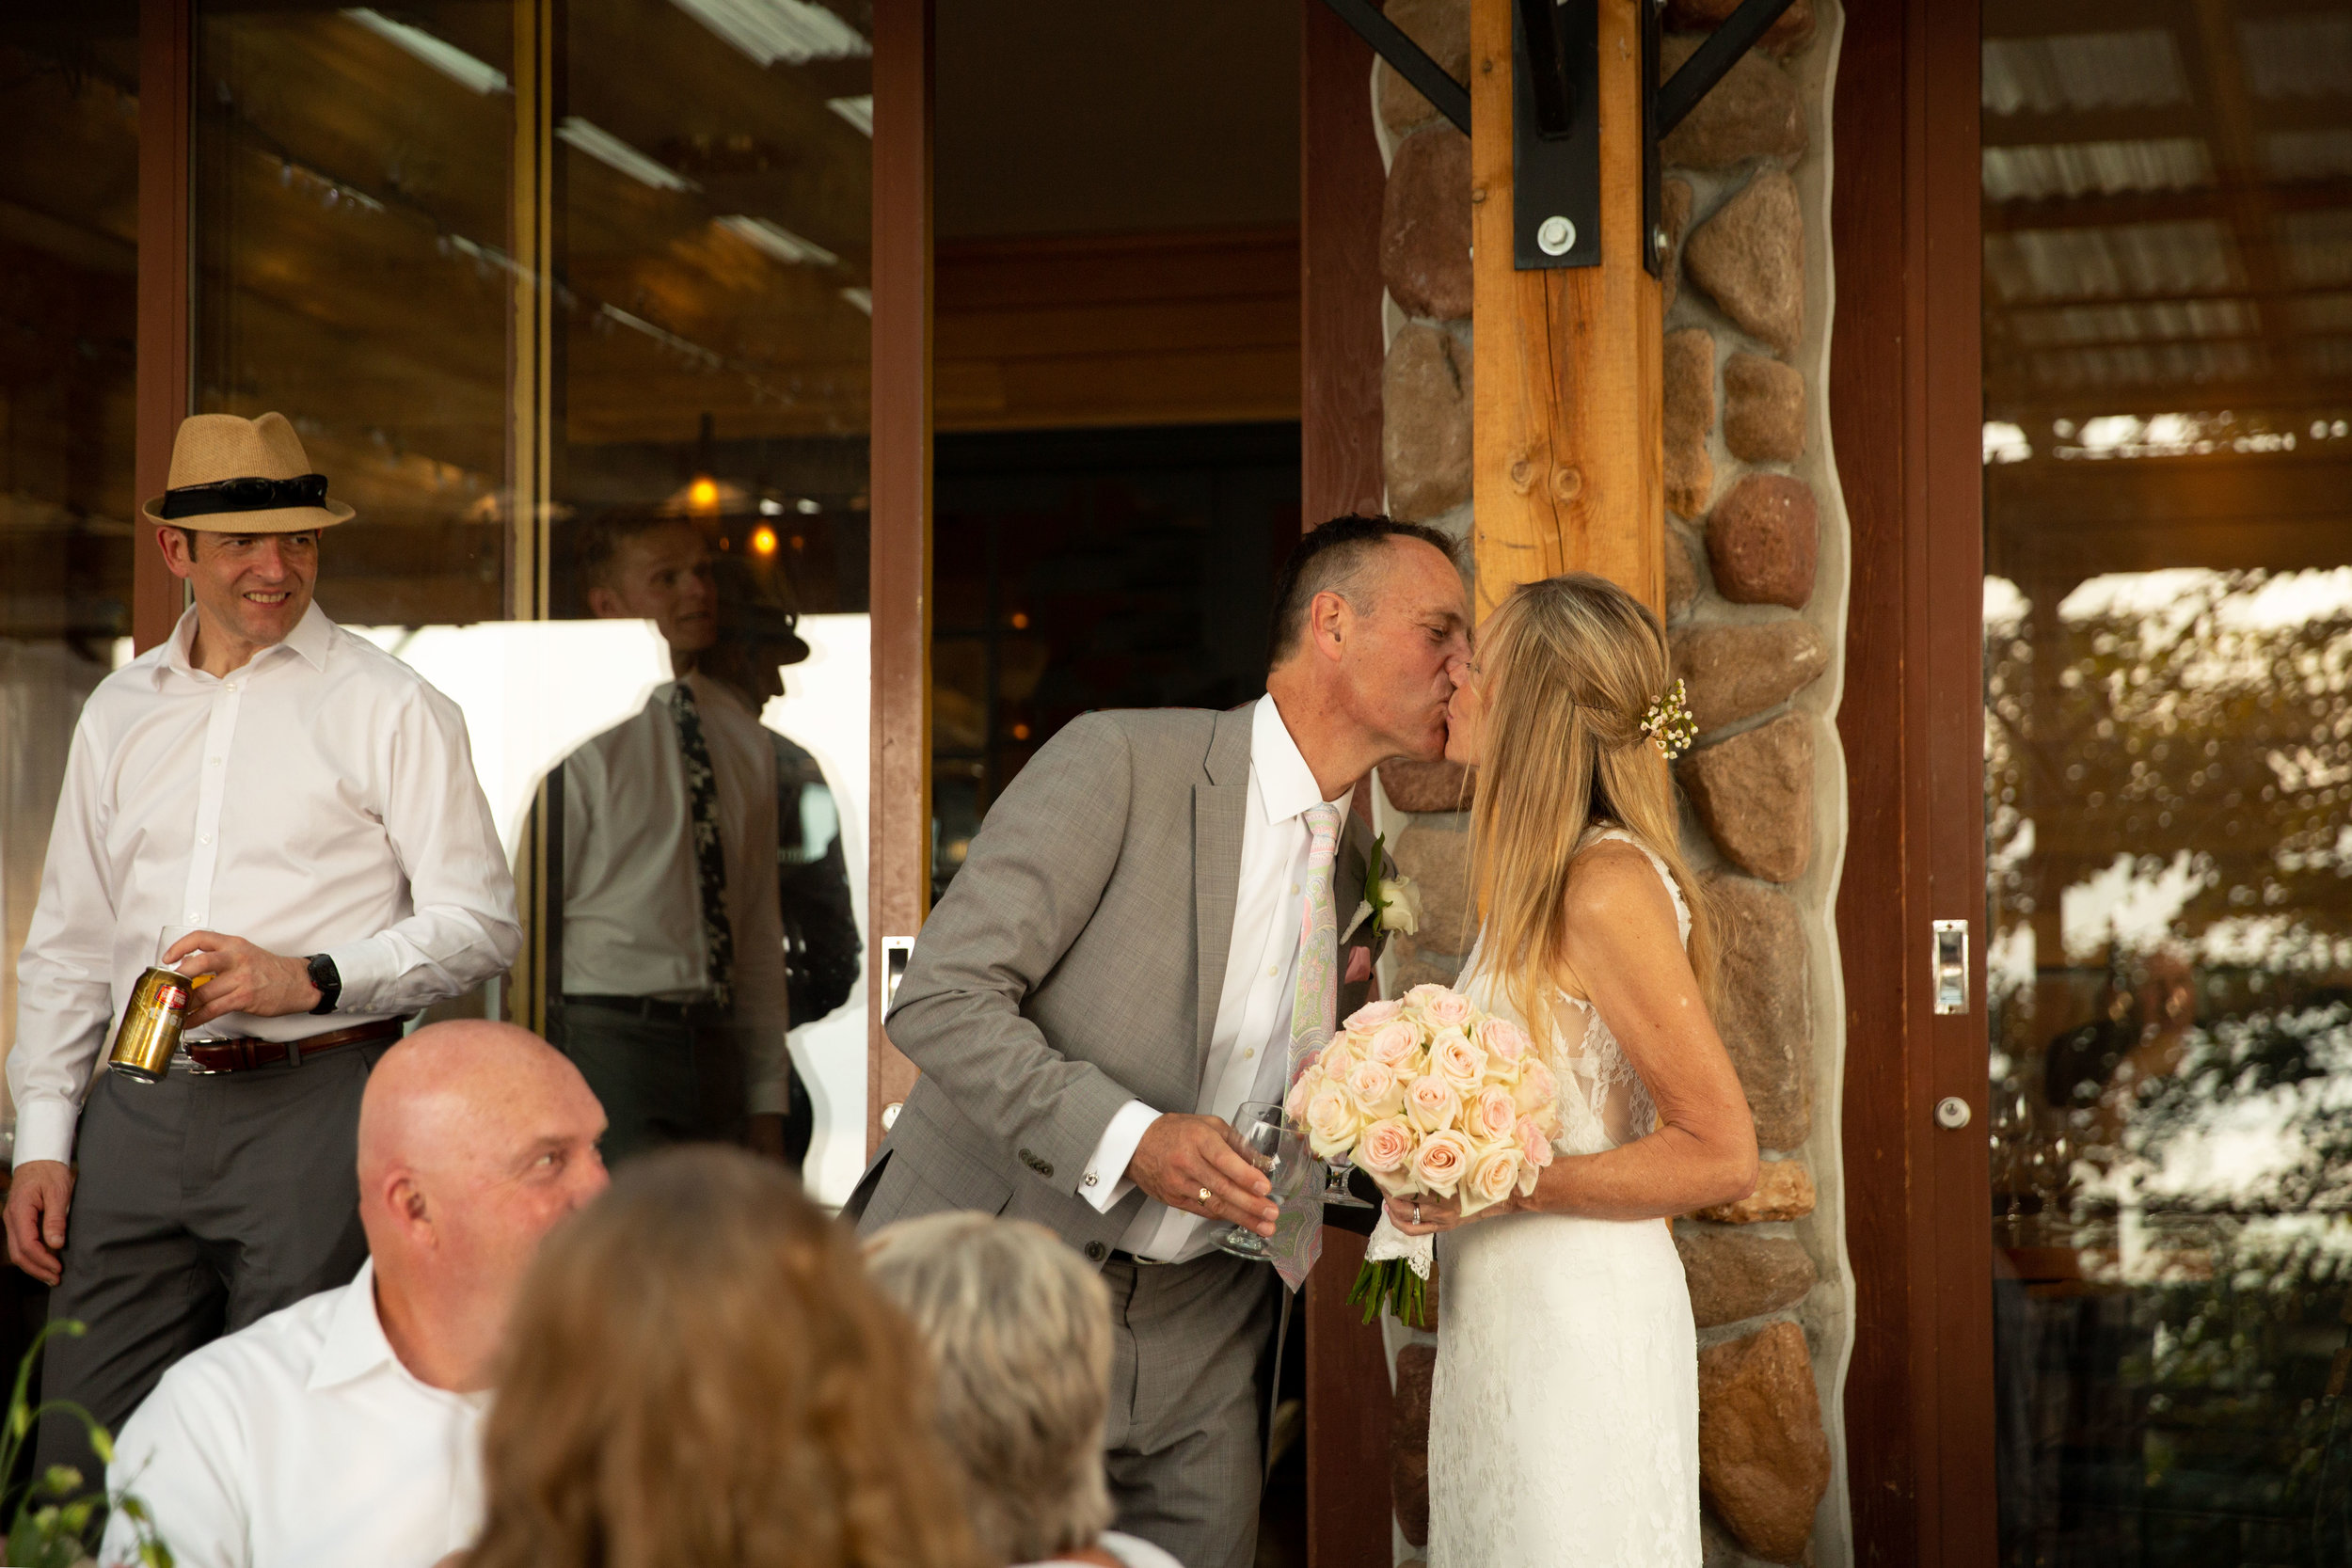 Heather and Grant wedding at Summerhill Winery